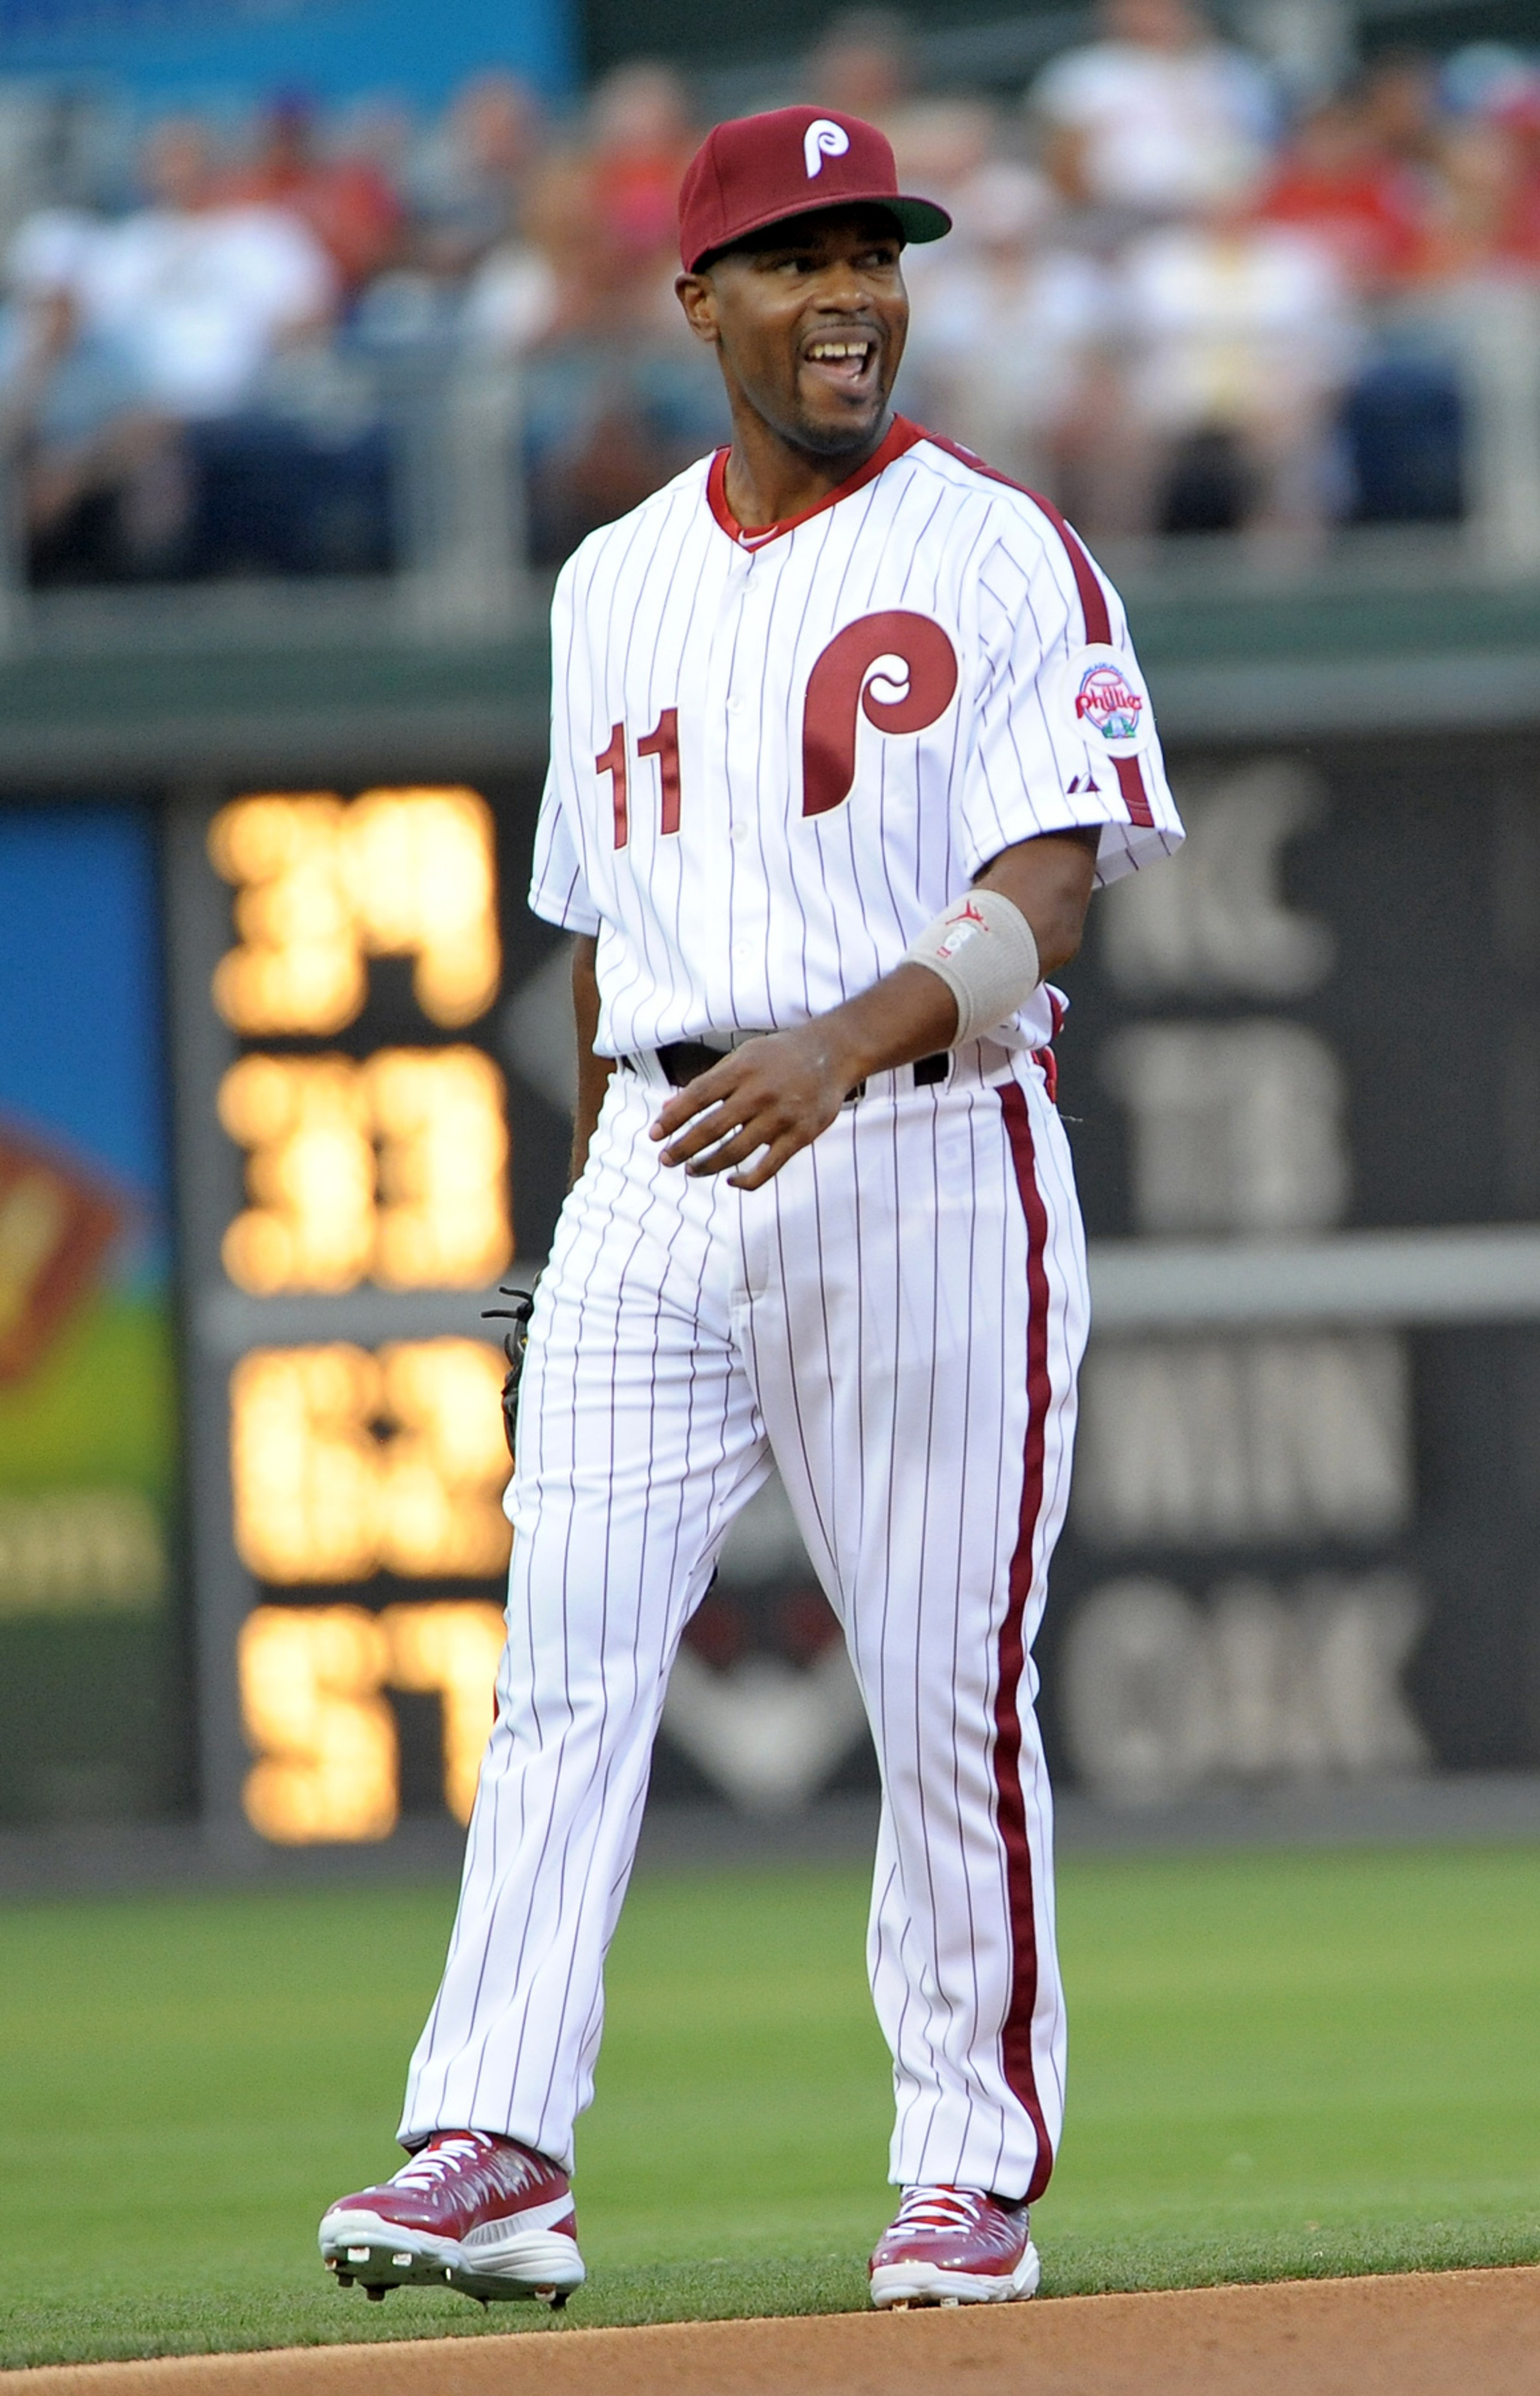 Jimmy Rollins, all time great.